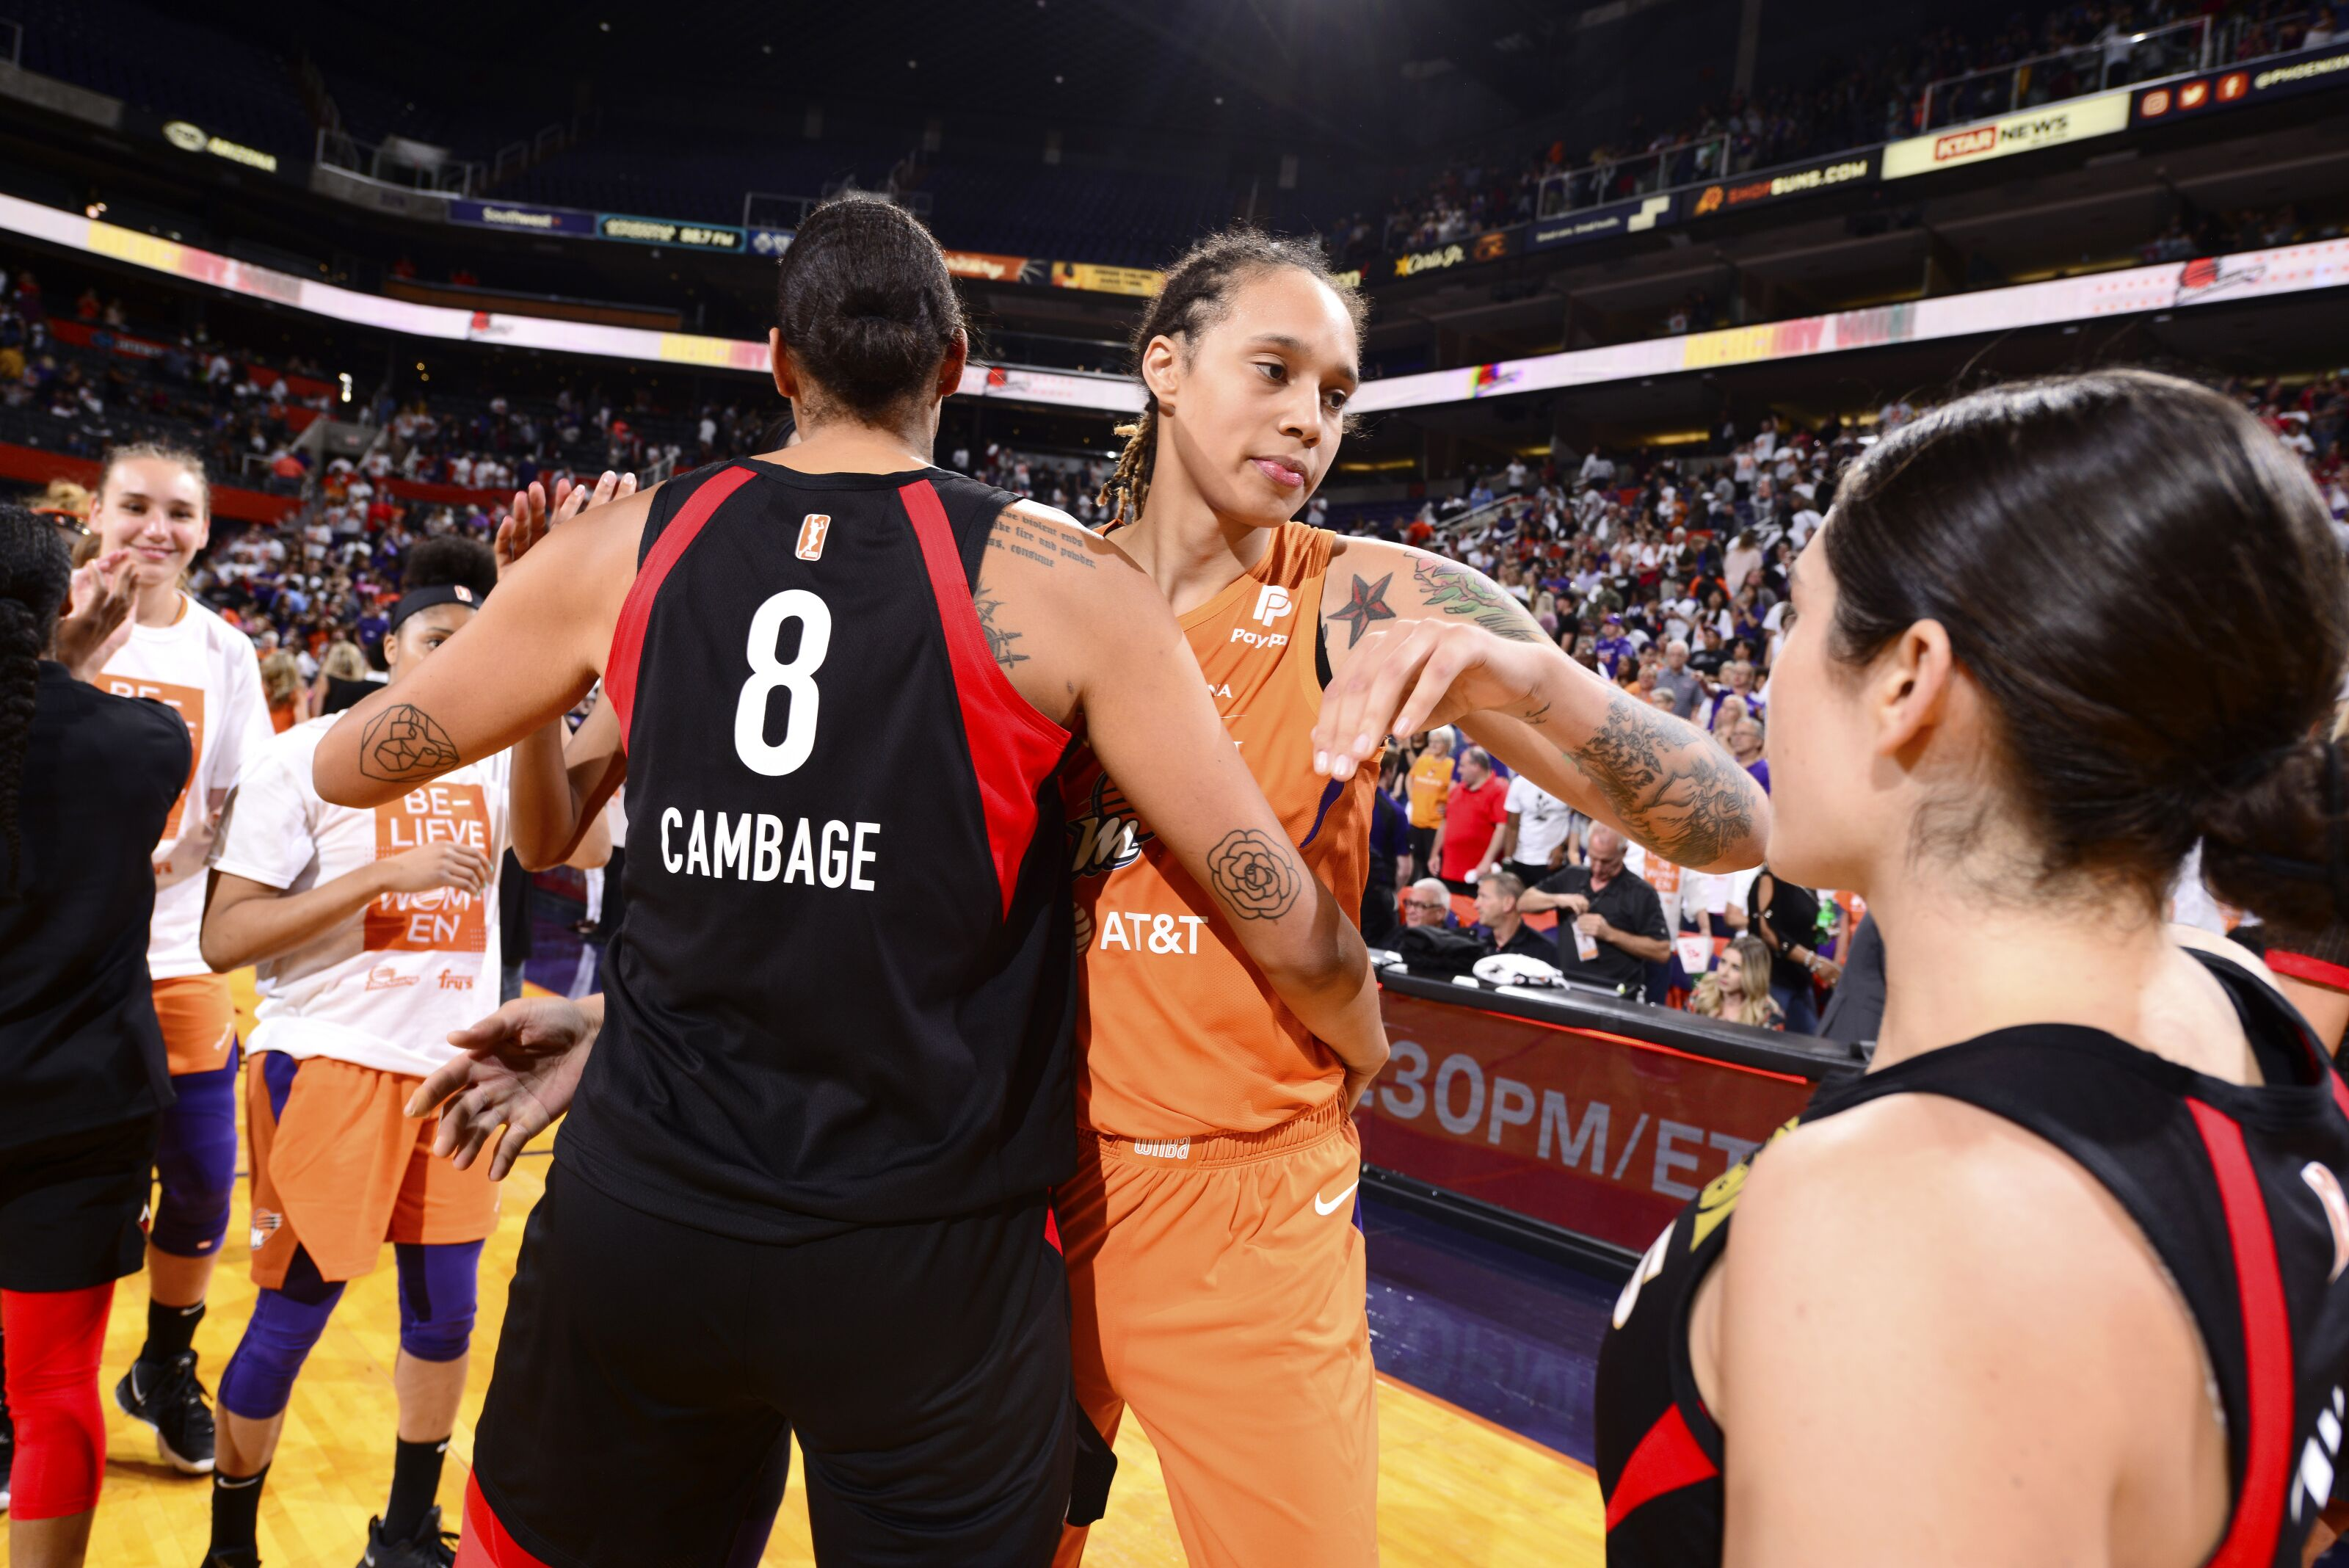 Expectations for Phoenix Mercury largely unknown in playoffs